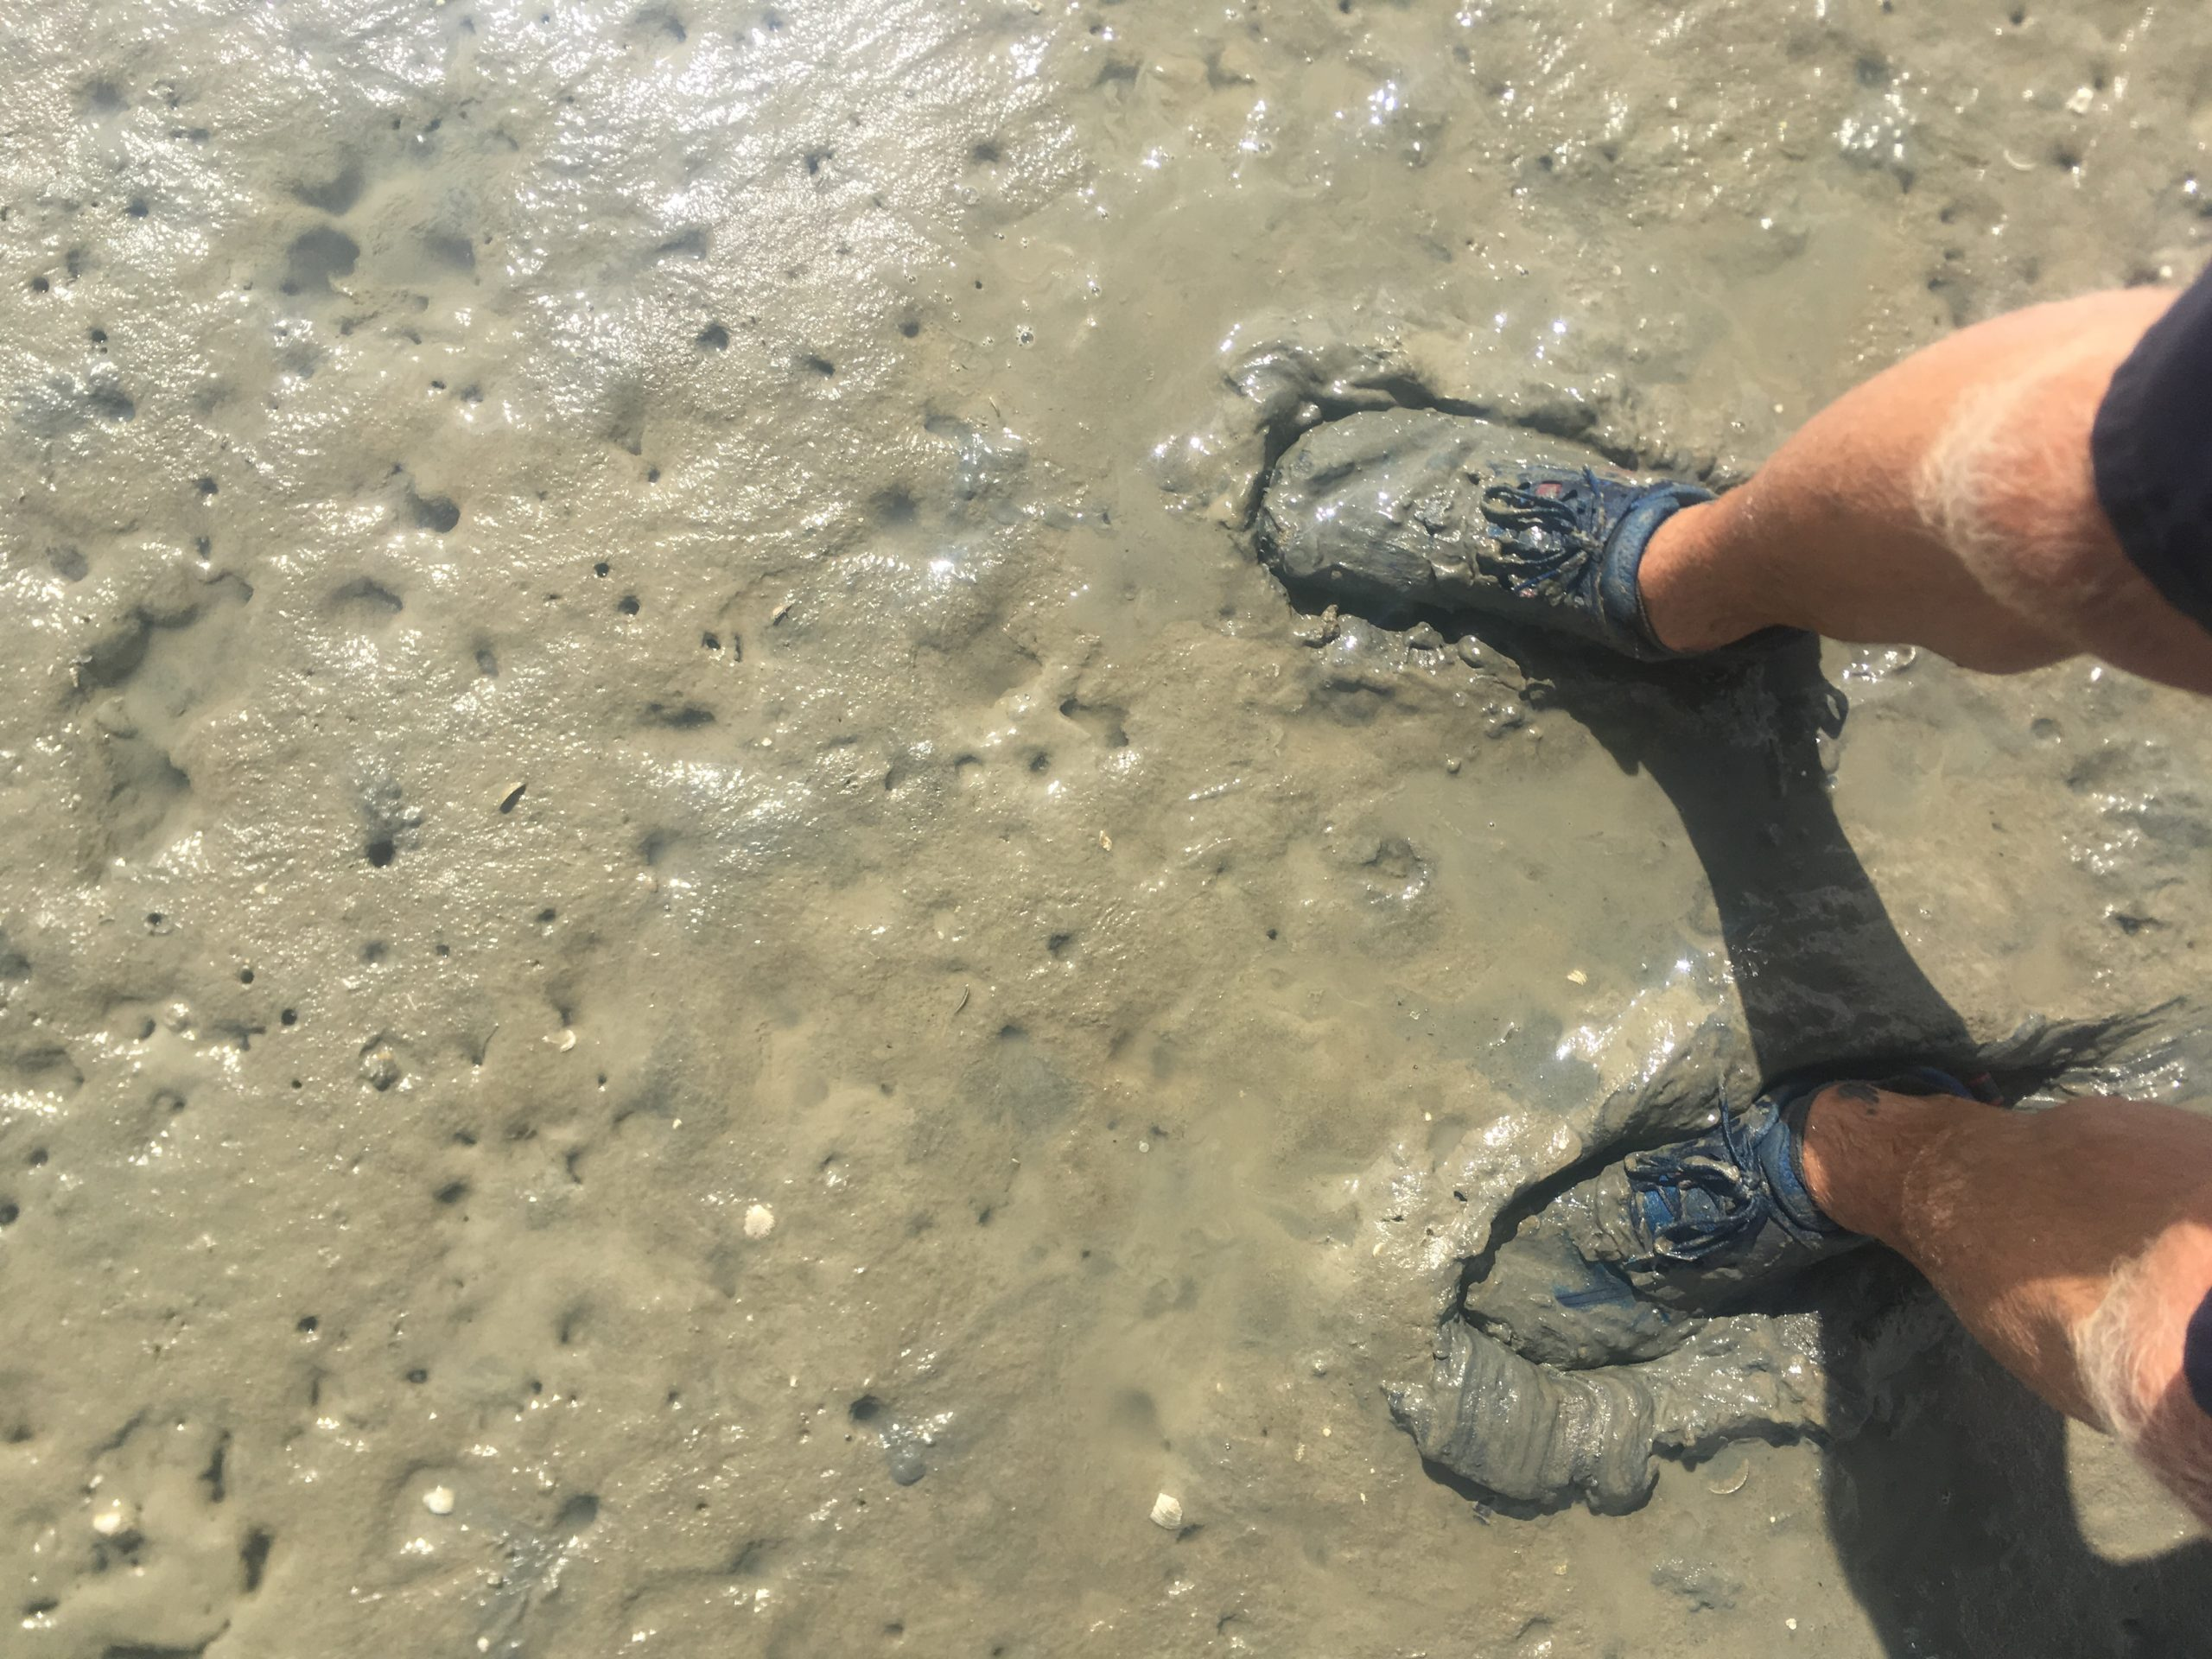 Used Hiking Shoes in Coastal Mud